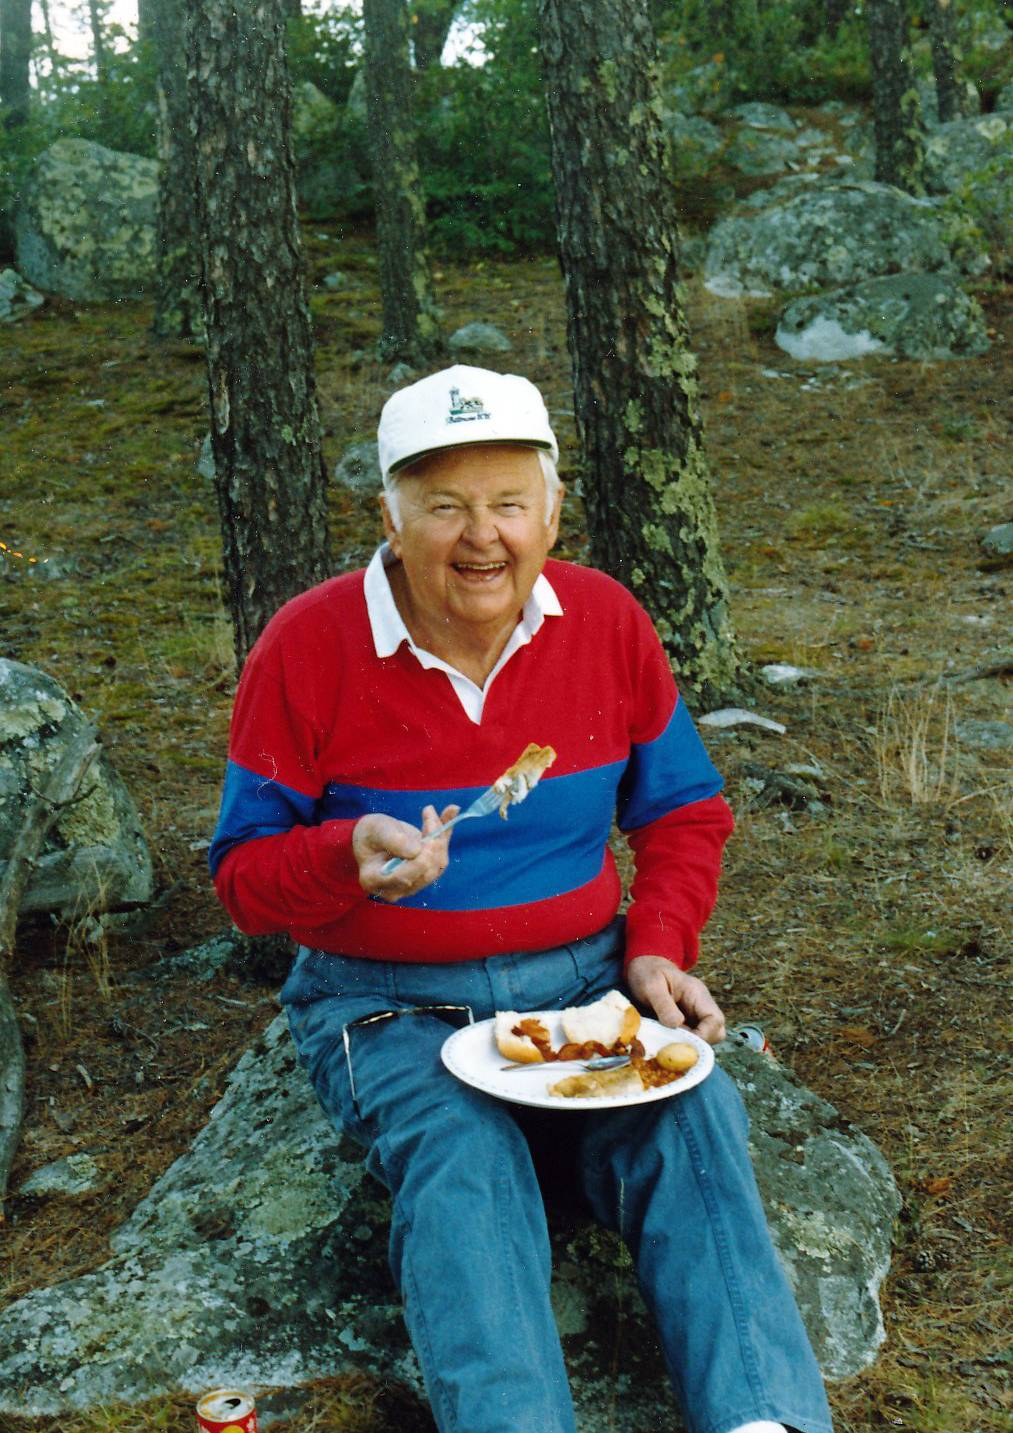 In this family photo, Stuart R. Paddock Jr. stops for lunch during a camping trip.